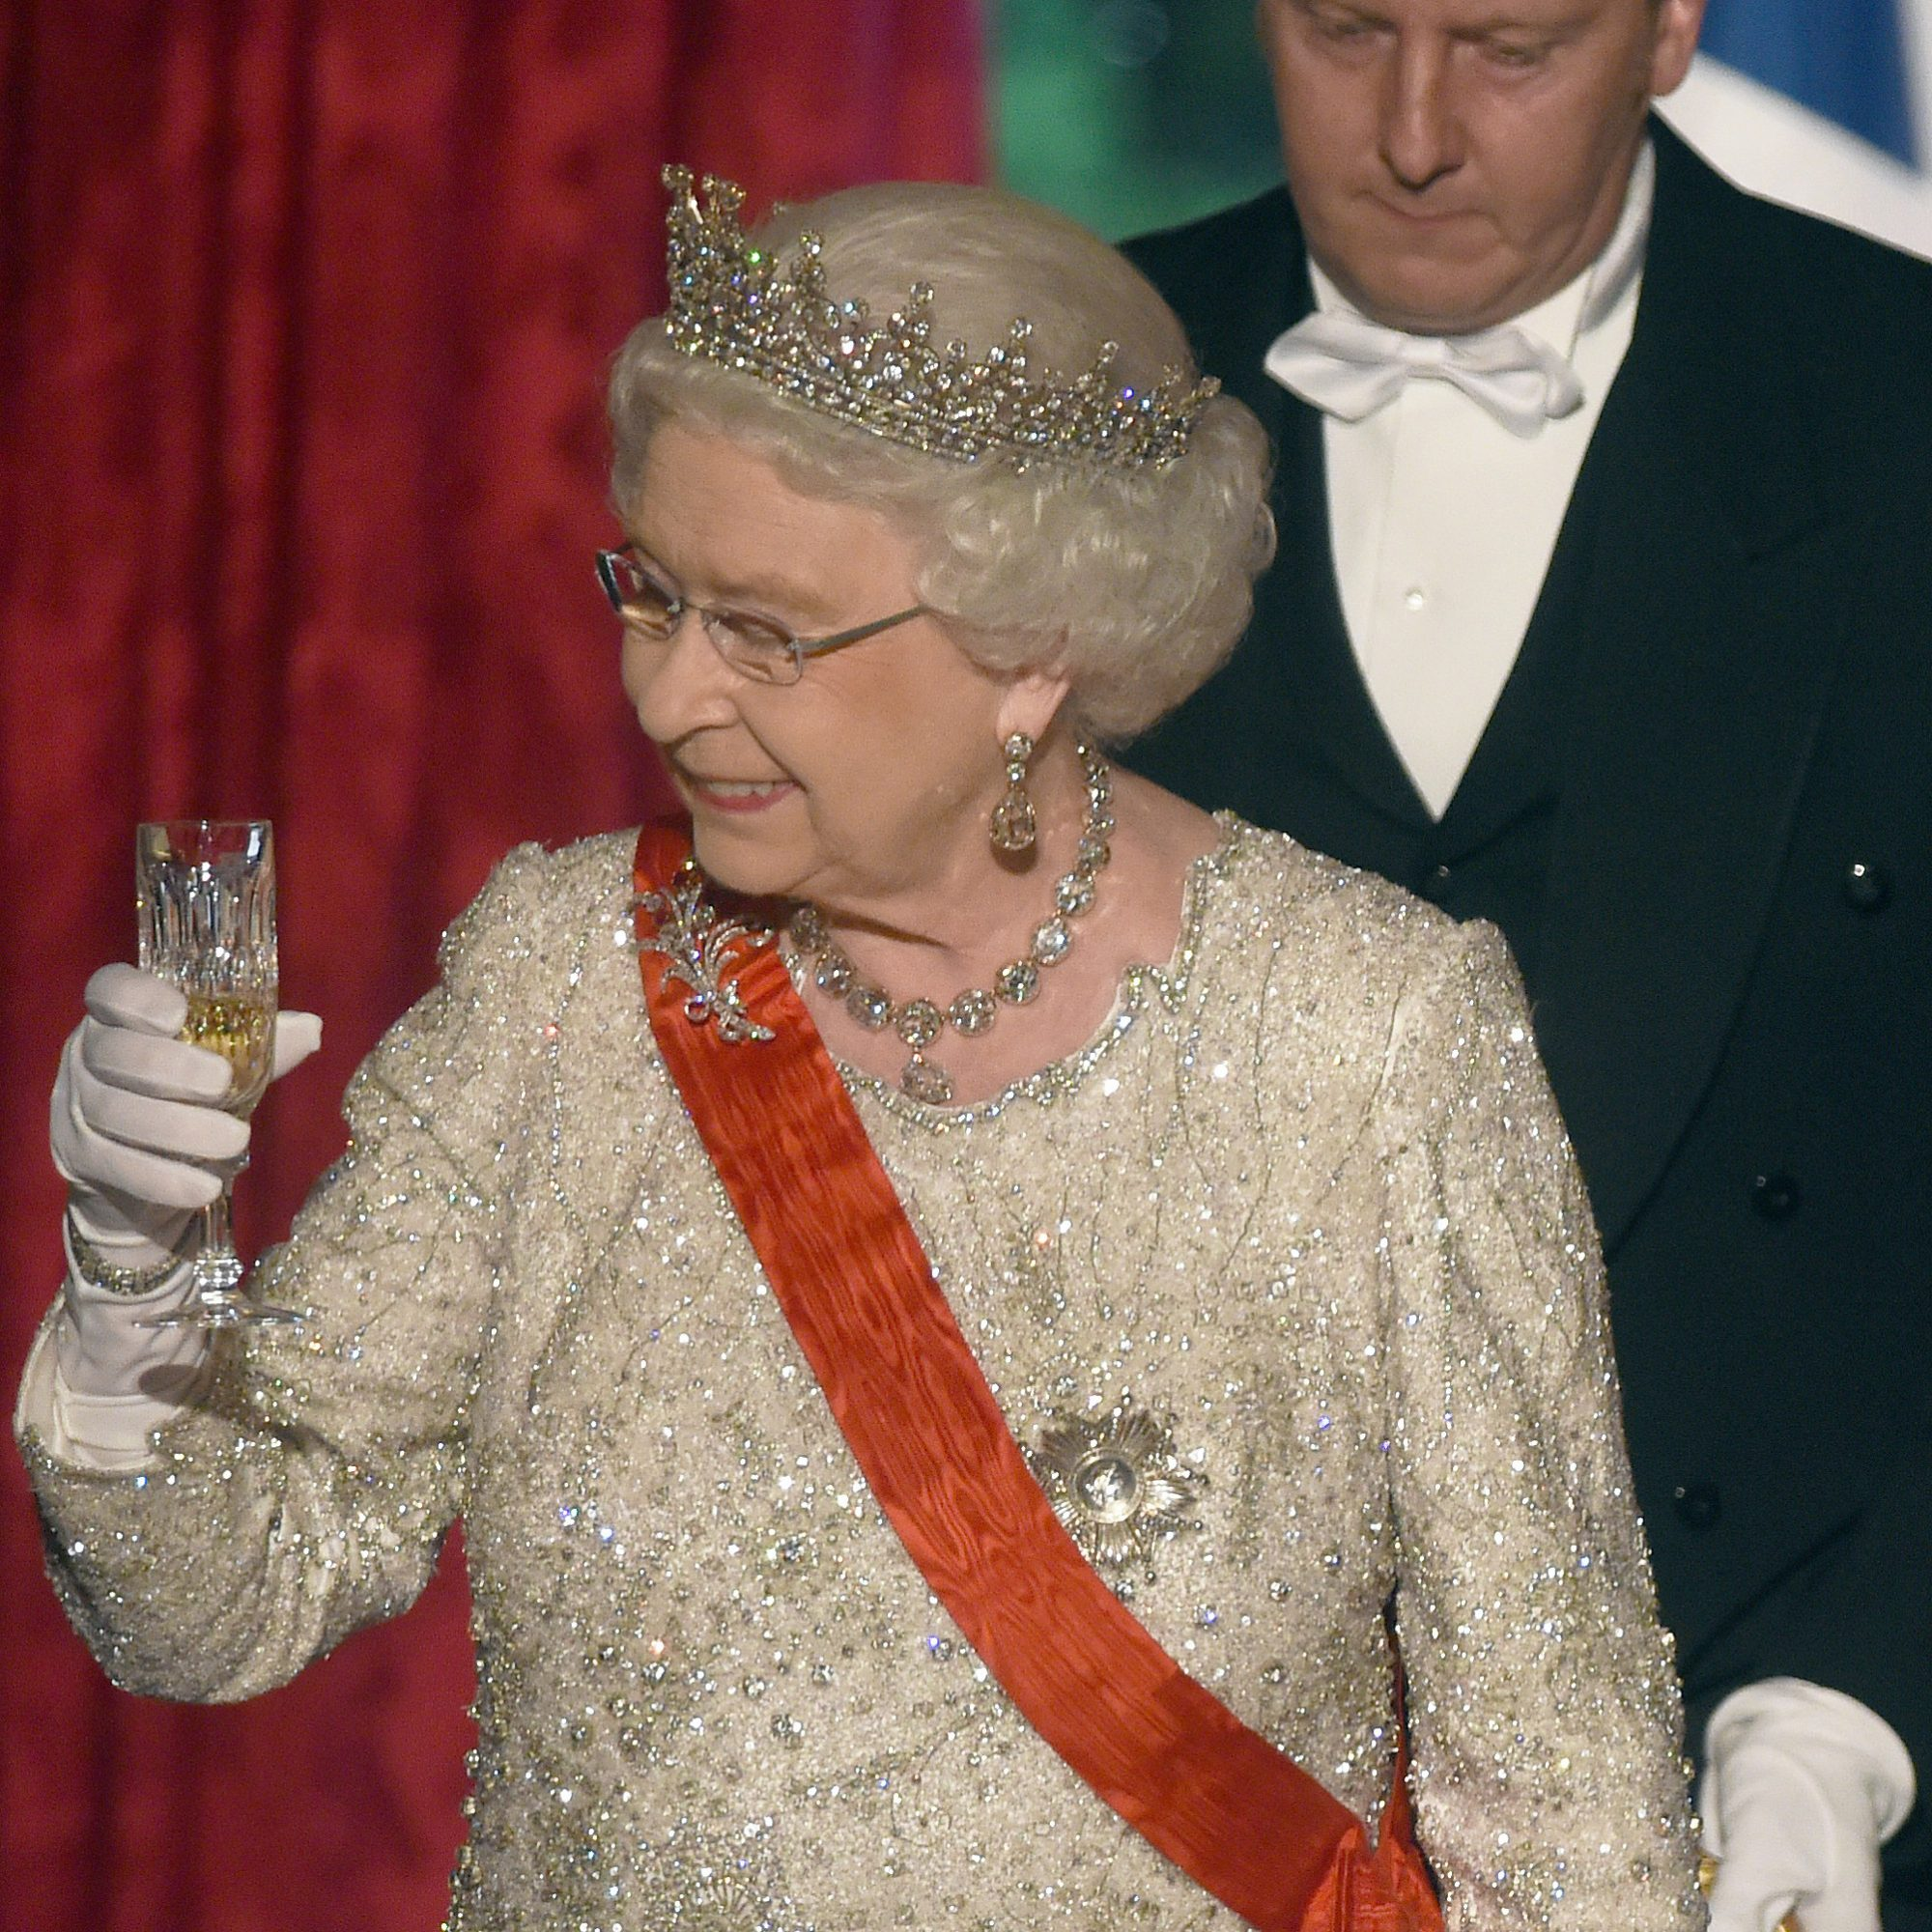 QUEEN DRINKING CHAMPAGNE FWX